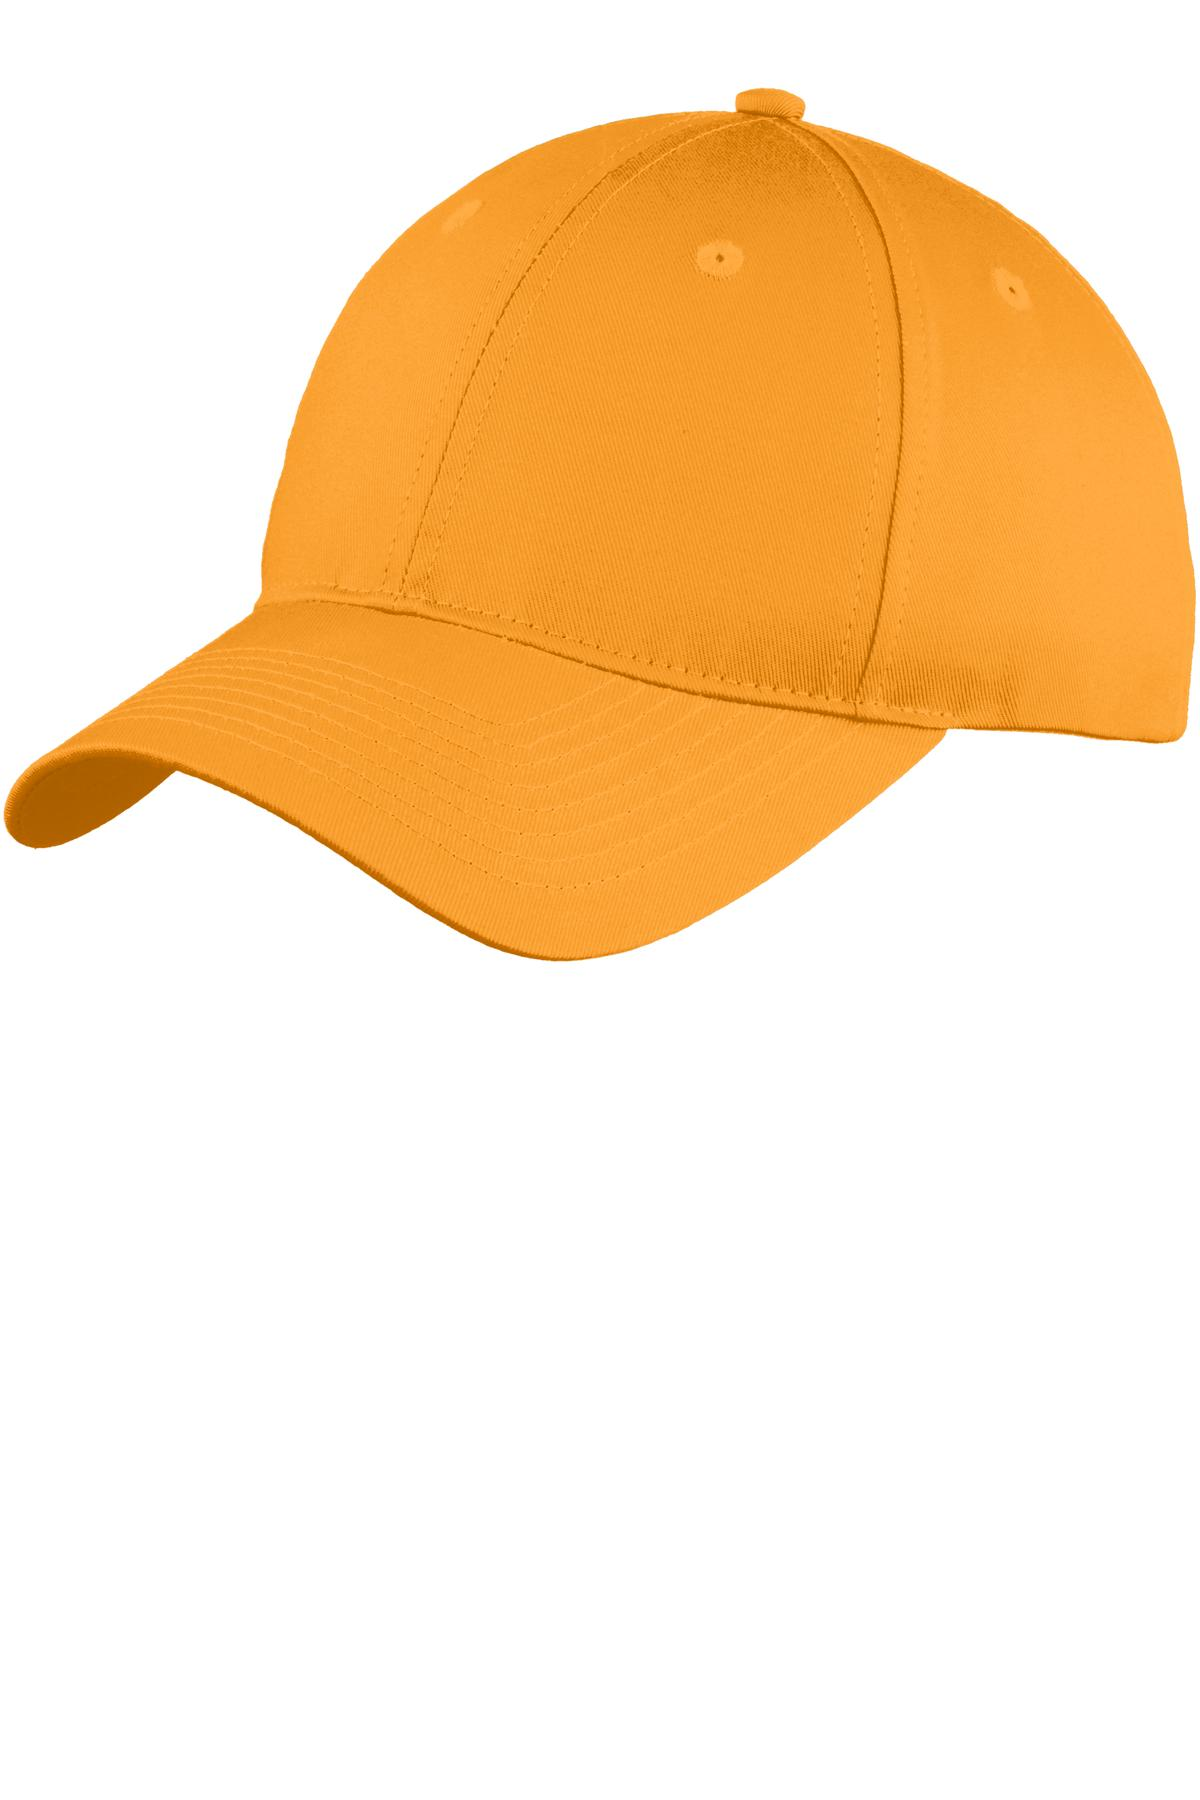 Port and Company Six-Panel Unstructured Twill Cap. C914